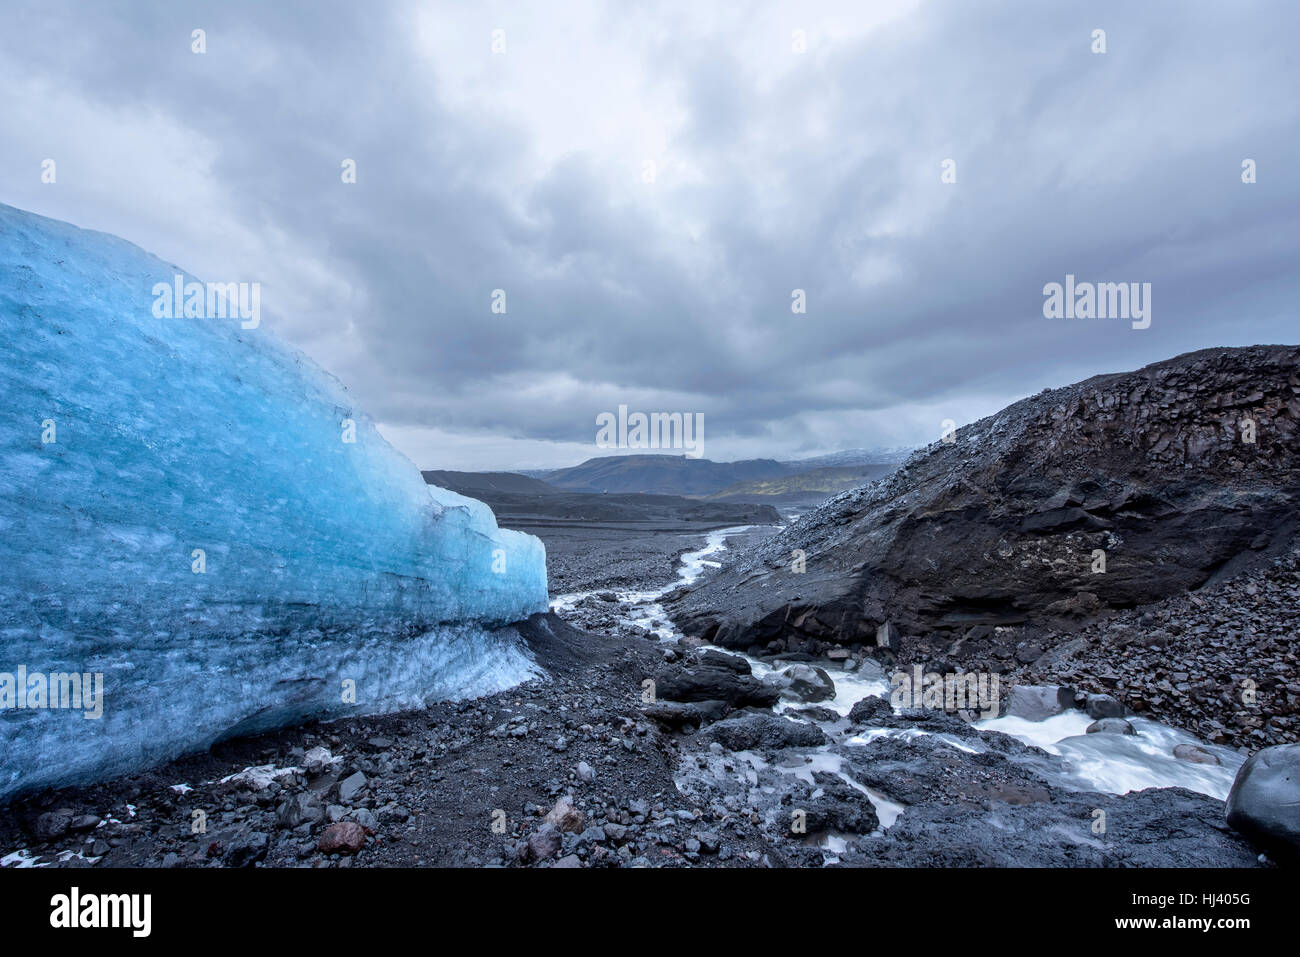 The side of a melting glacier in a rugged Iceland wilderness forms a small stream running down the mountainside - Stock Image